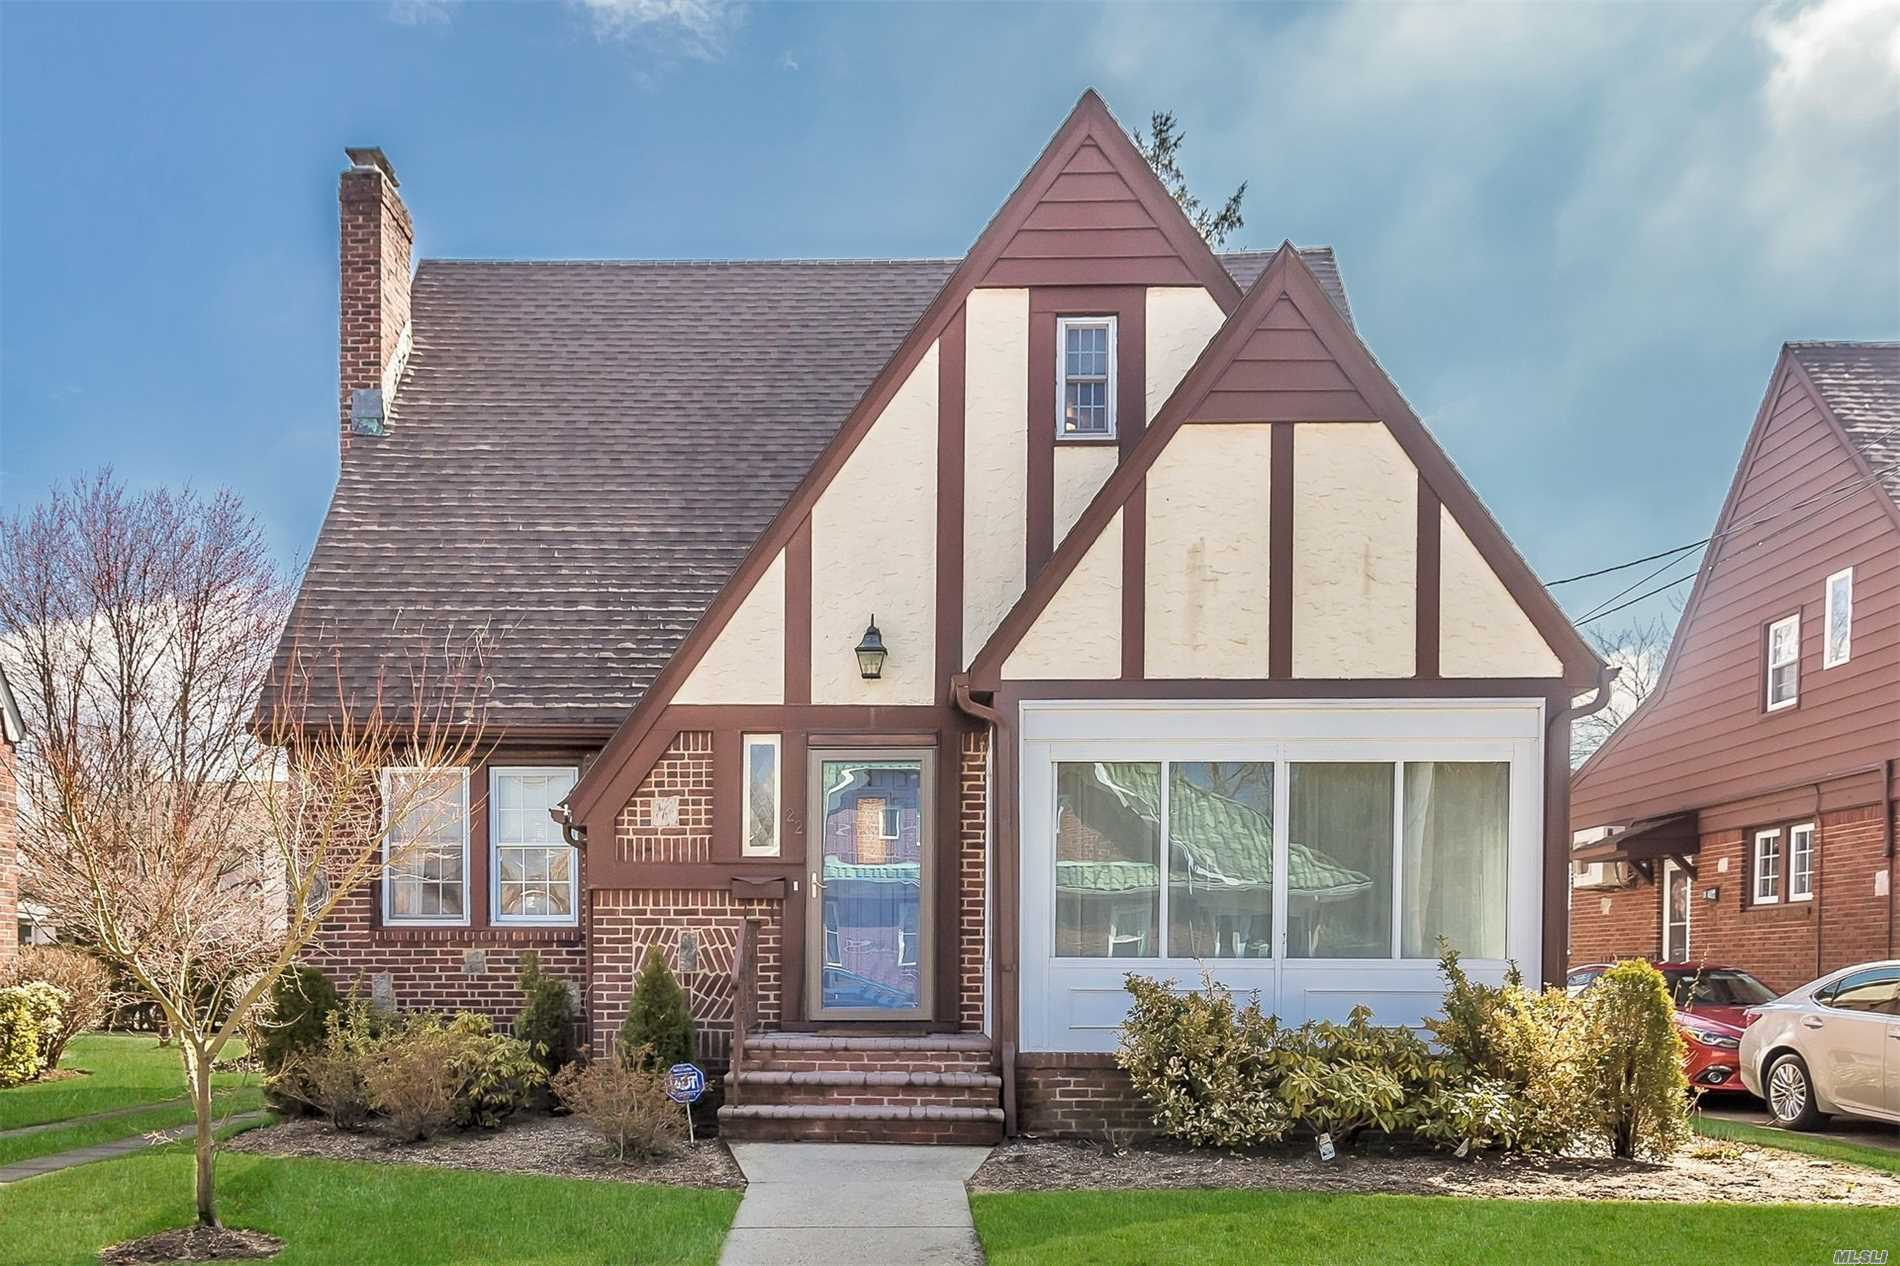 Stunning tudor with Manhattan vibe. Living room w/fireplace, true formal dining room, large eat in kitchen with island, enclosed porch,  1st floor bedroom with bath. Huge master bedroom, 2 new bathrooms, gas heat, ductless ac units, 2 car garage, close to malverne train for an easy commute into the city.